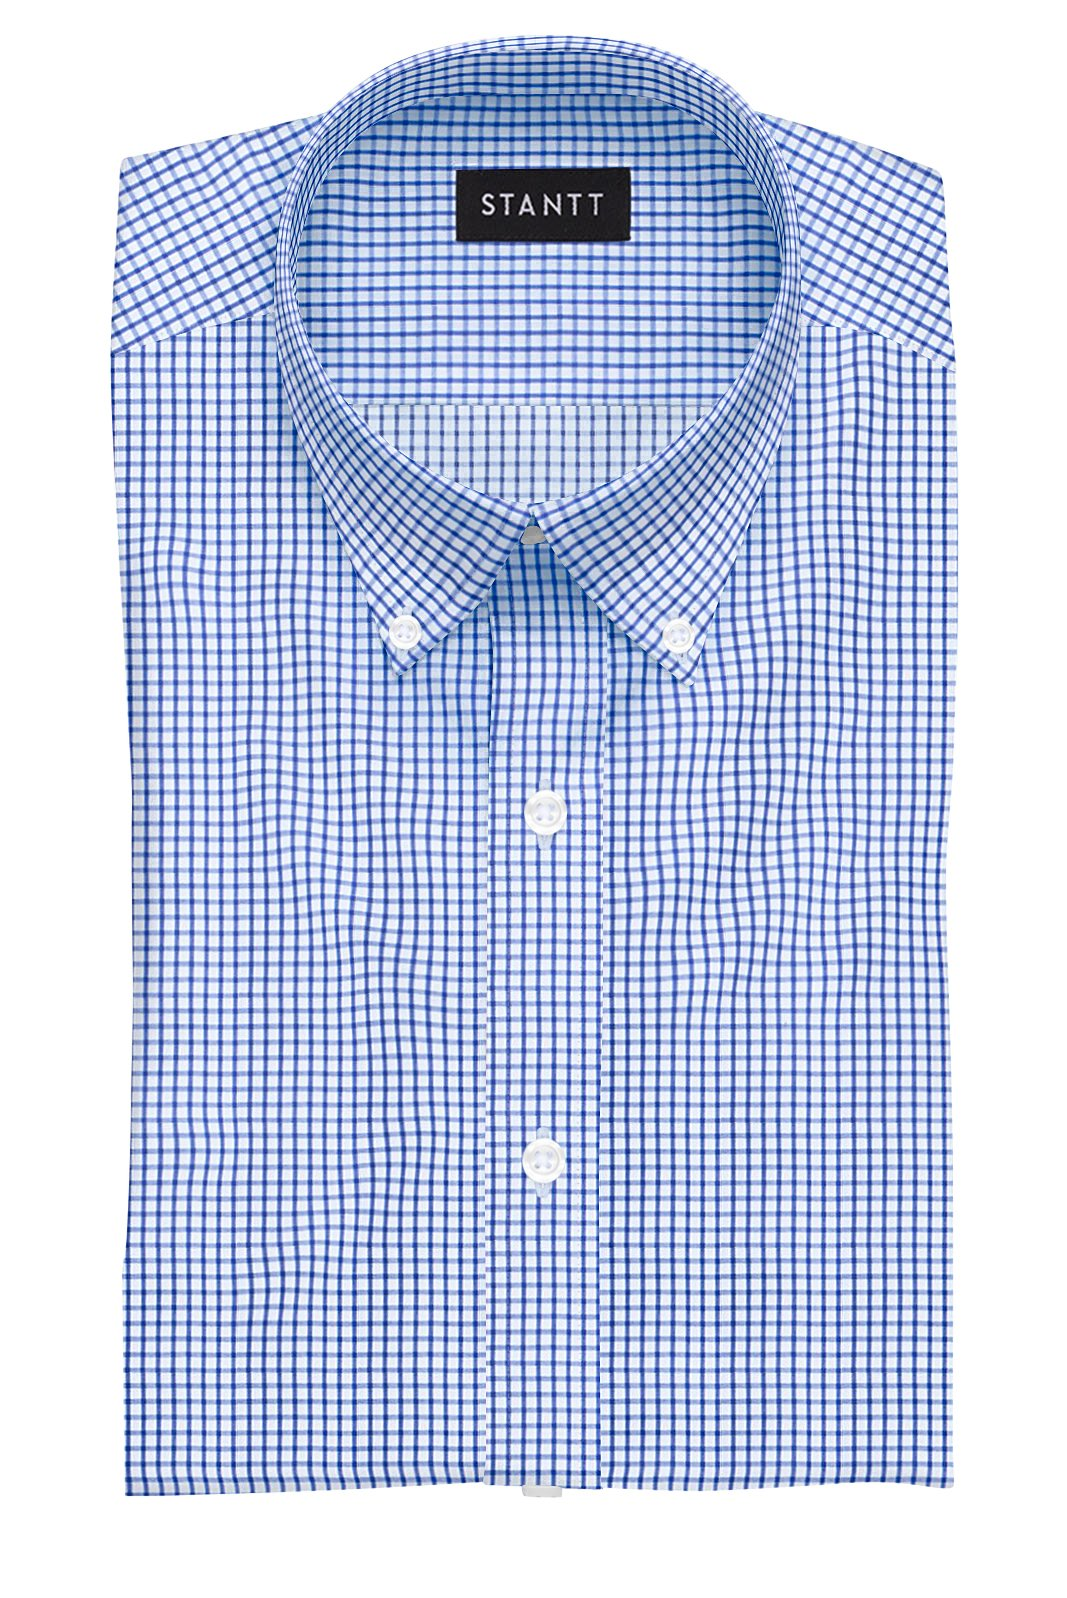 Navy Grid Check: Button-Down Collar, Barrel Cuff